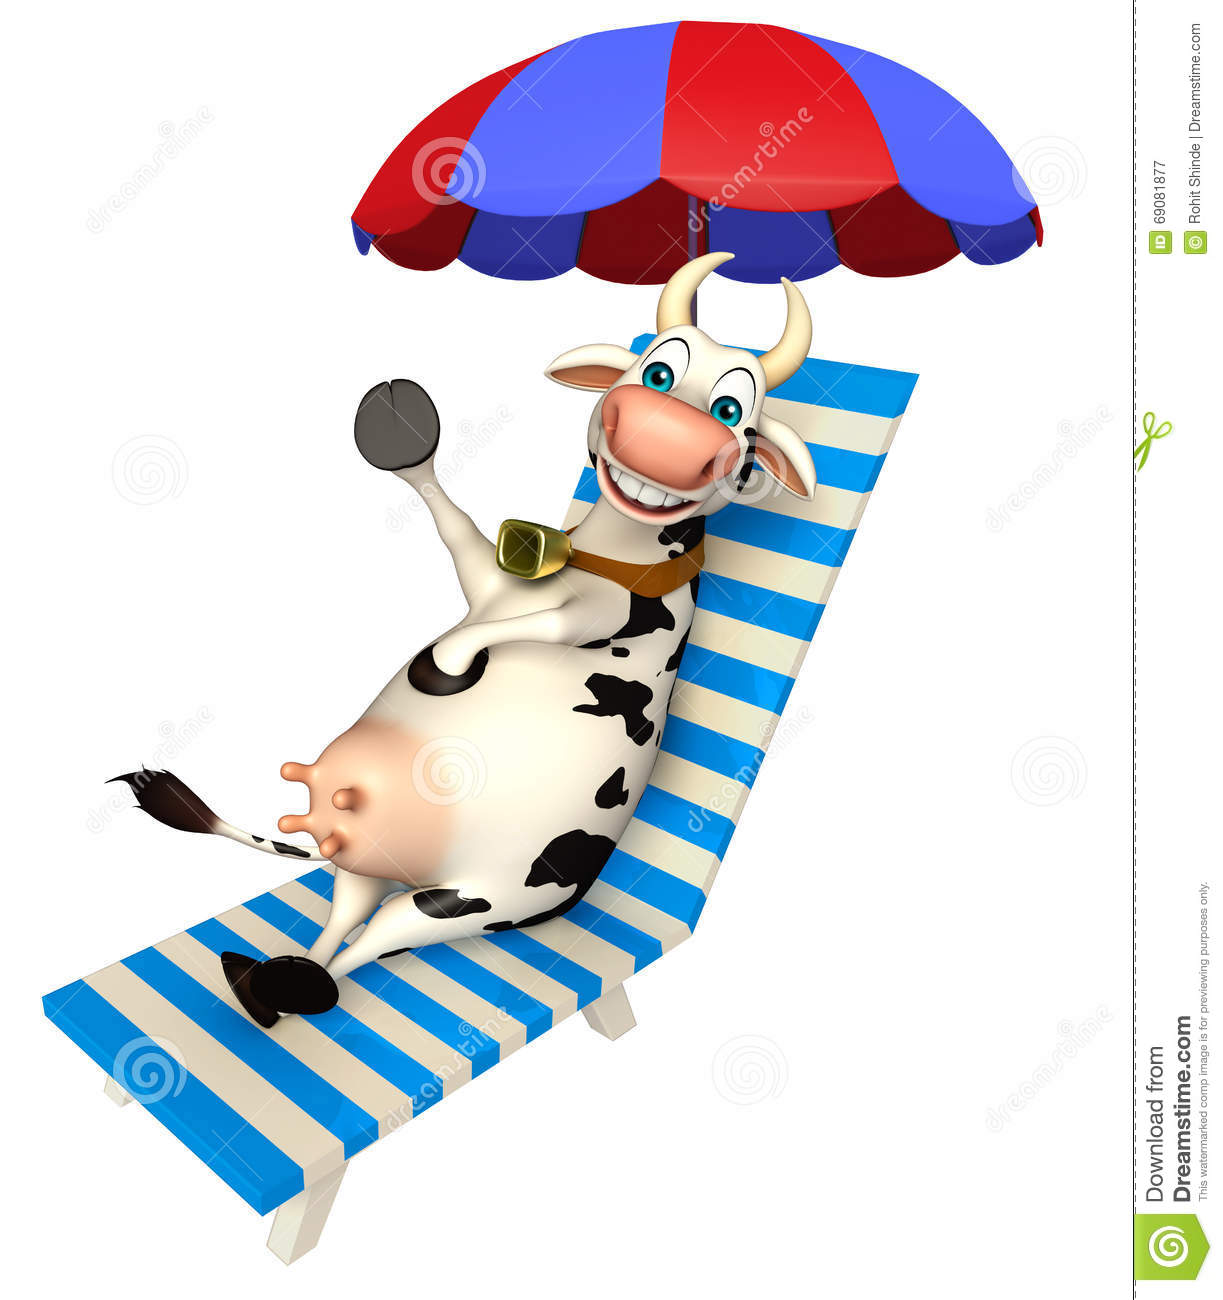 Folding outdoor lounge chair - Fun Cow Cartoon Character With Beach Chair Stock